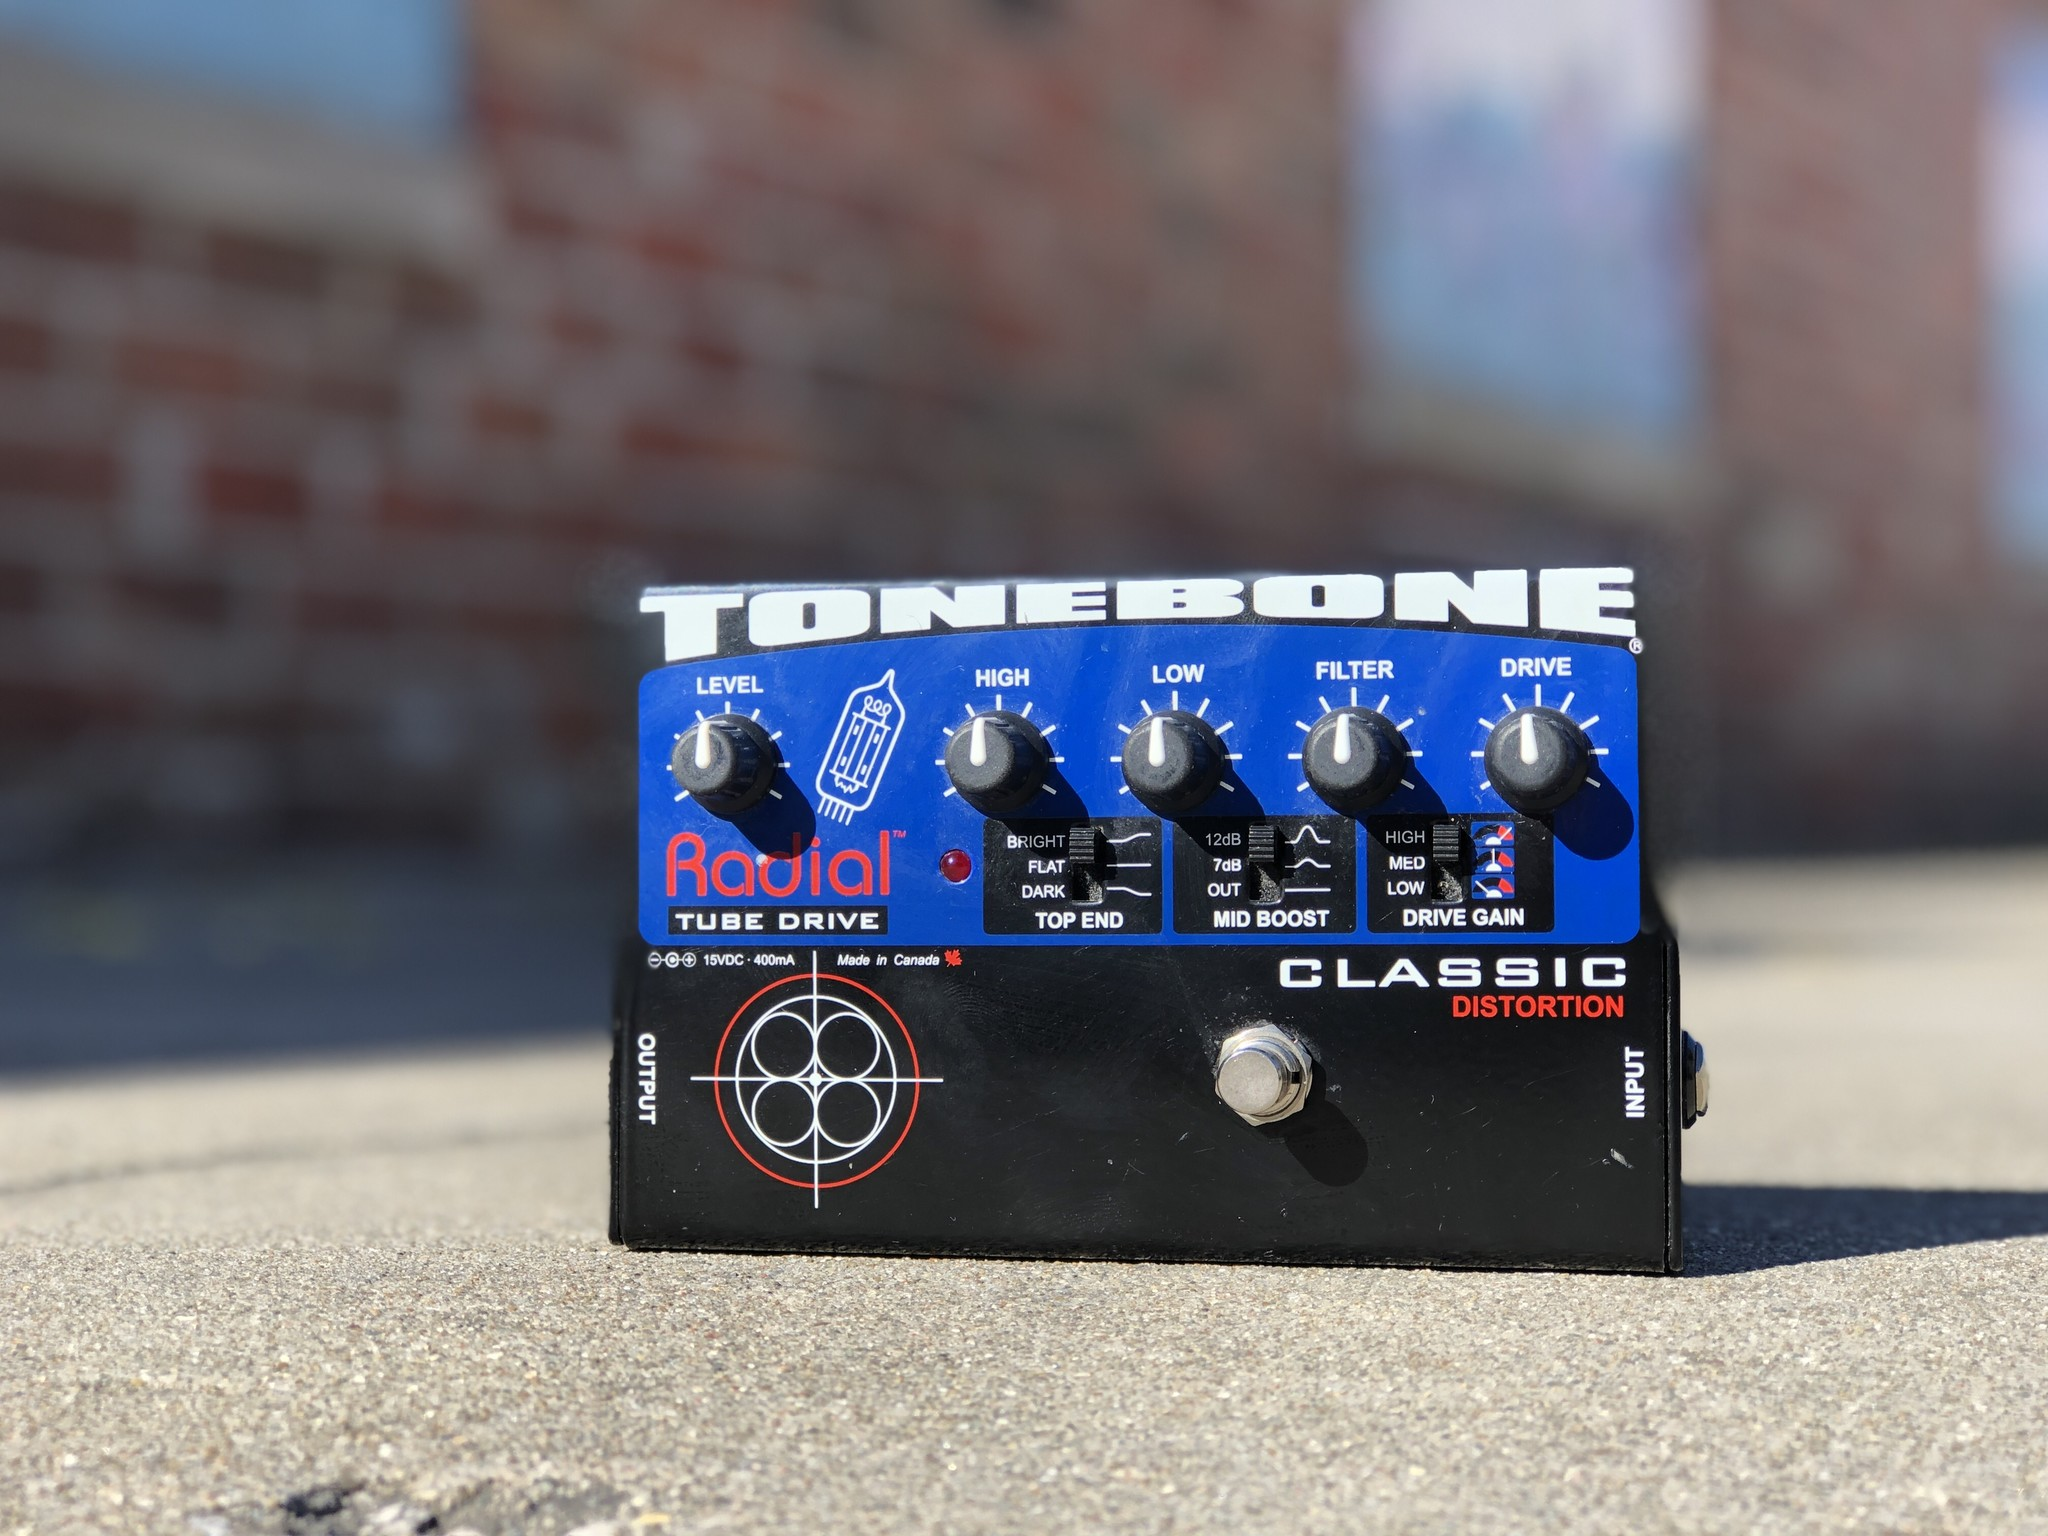 Radial Tonebone  Tube Drive Classic Distortion-1